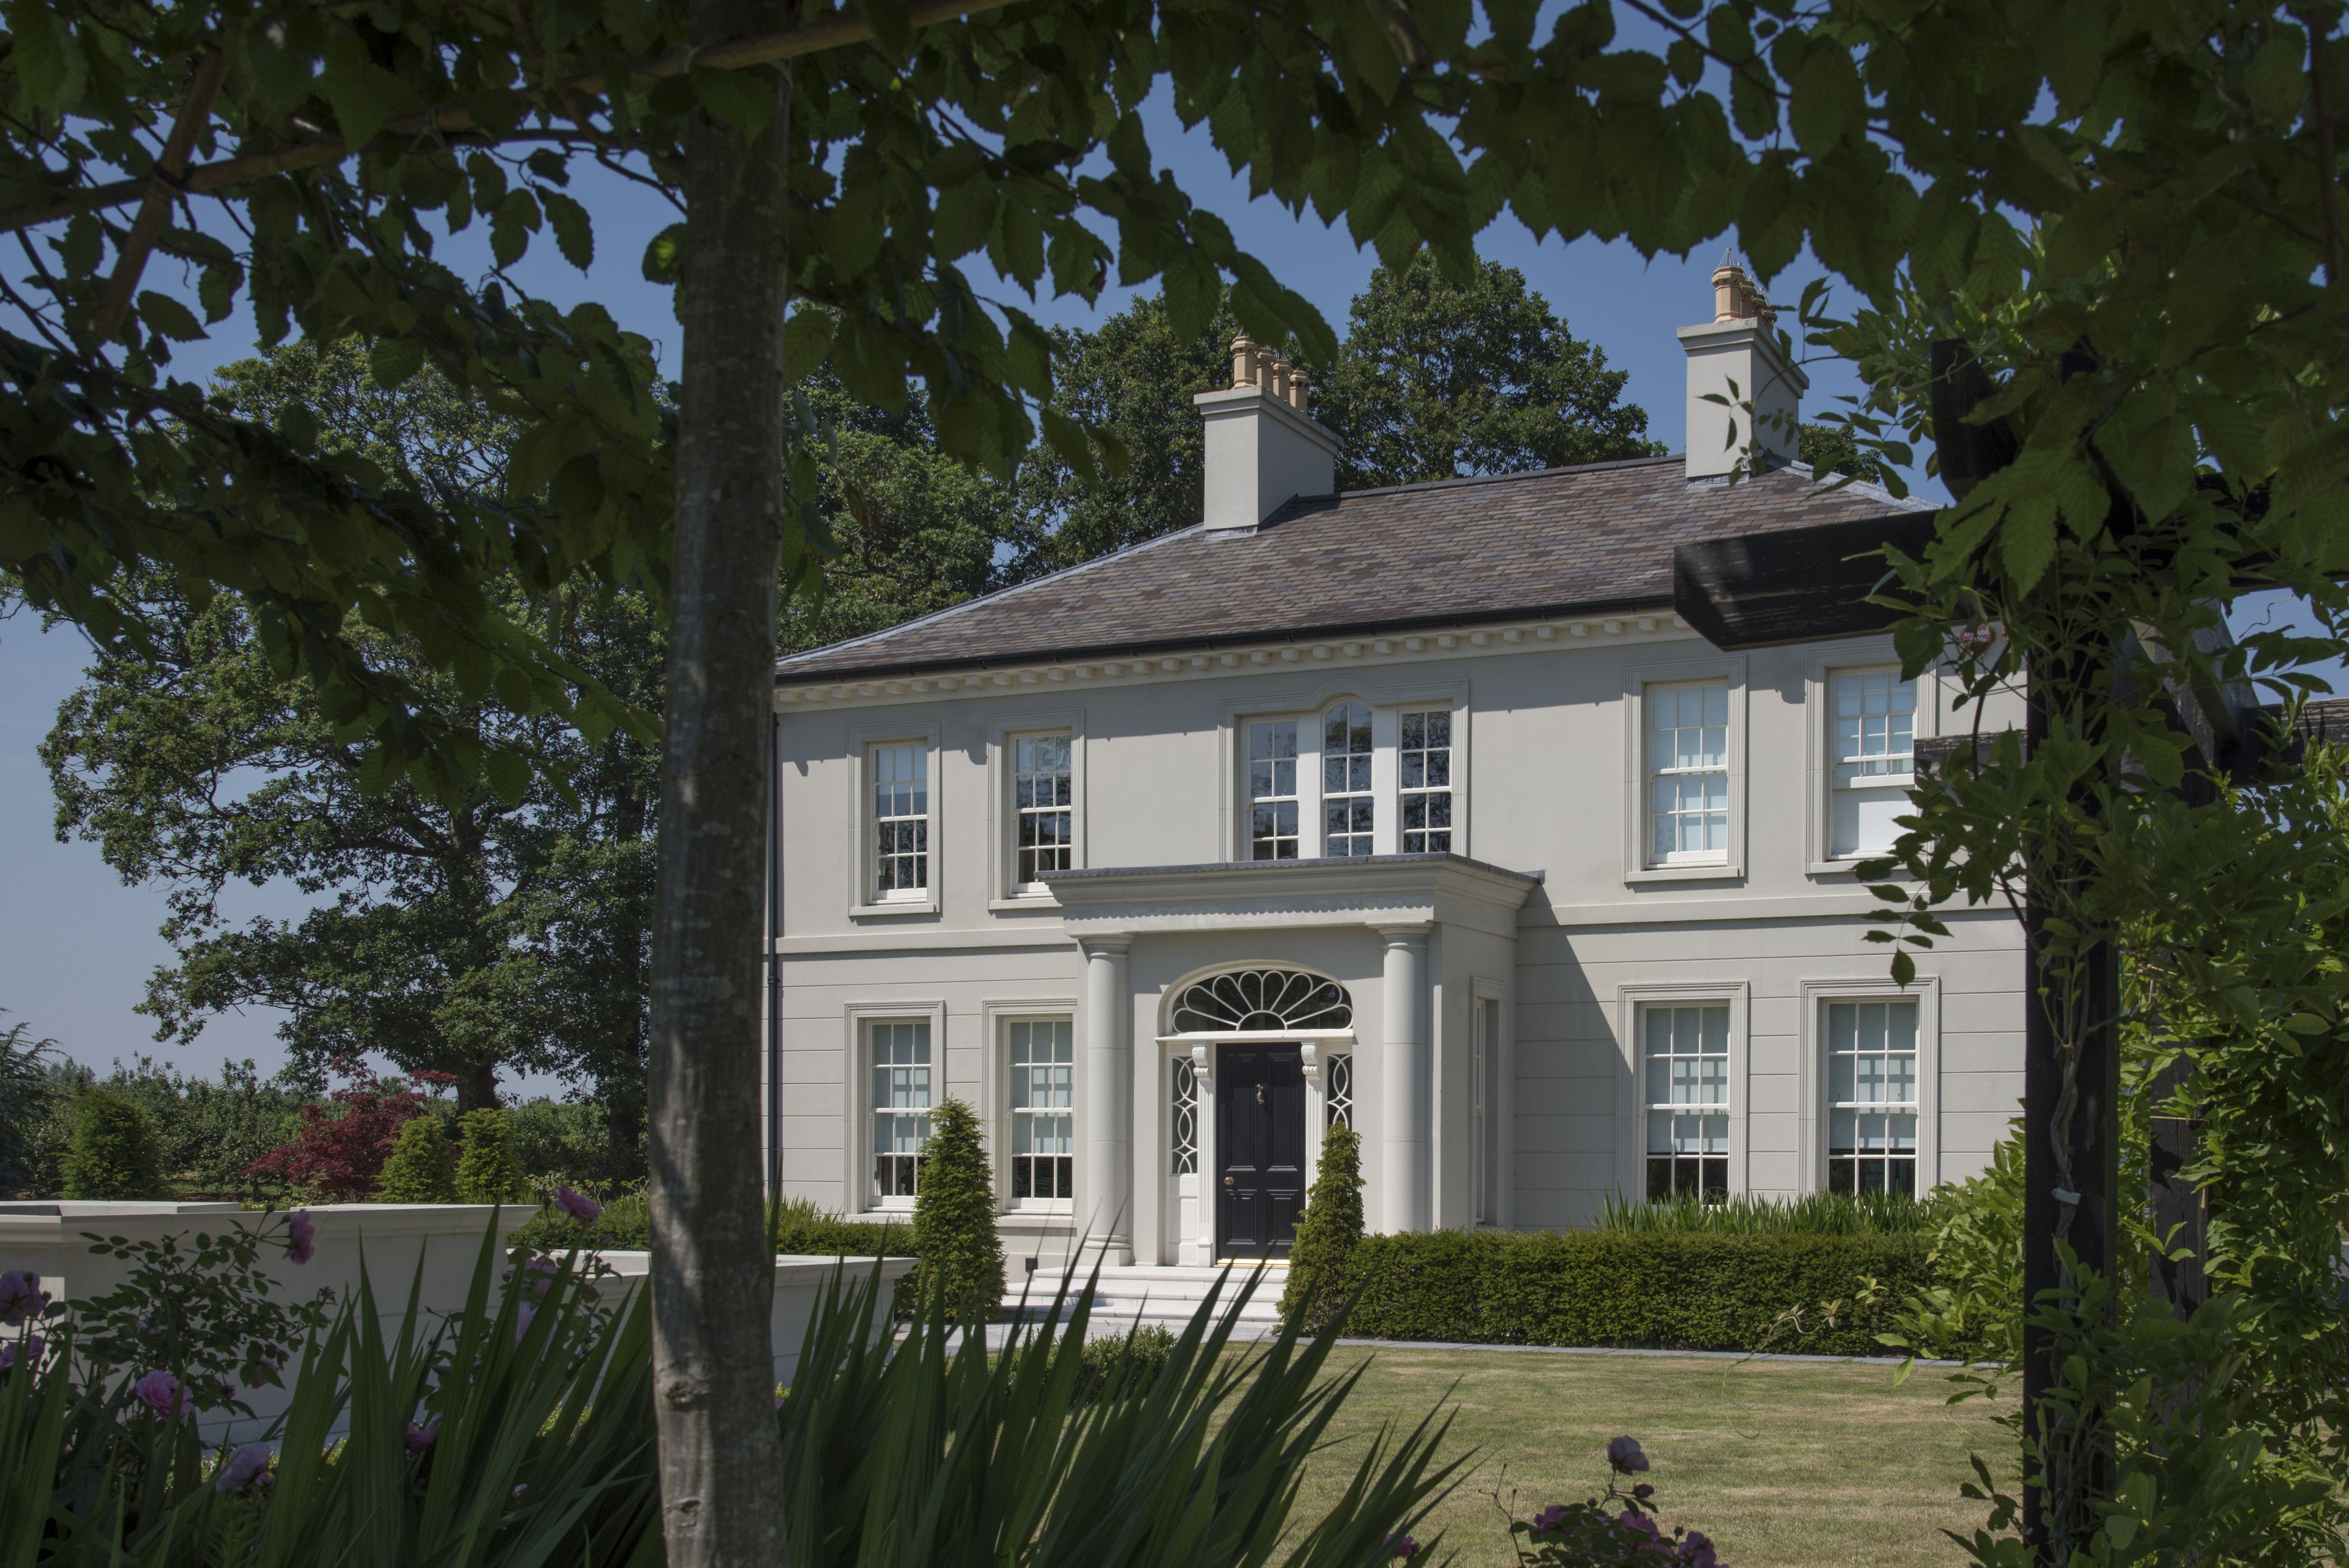 Georgian Inspired Country House Looking Through Trees With Images